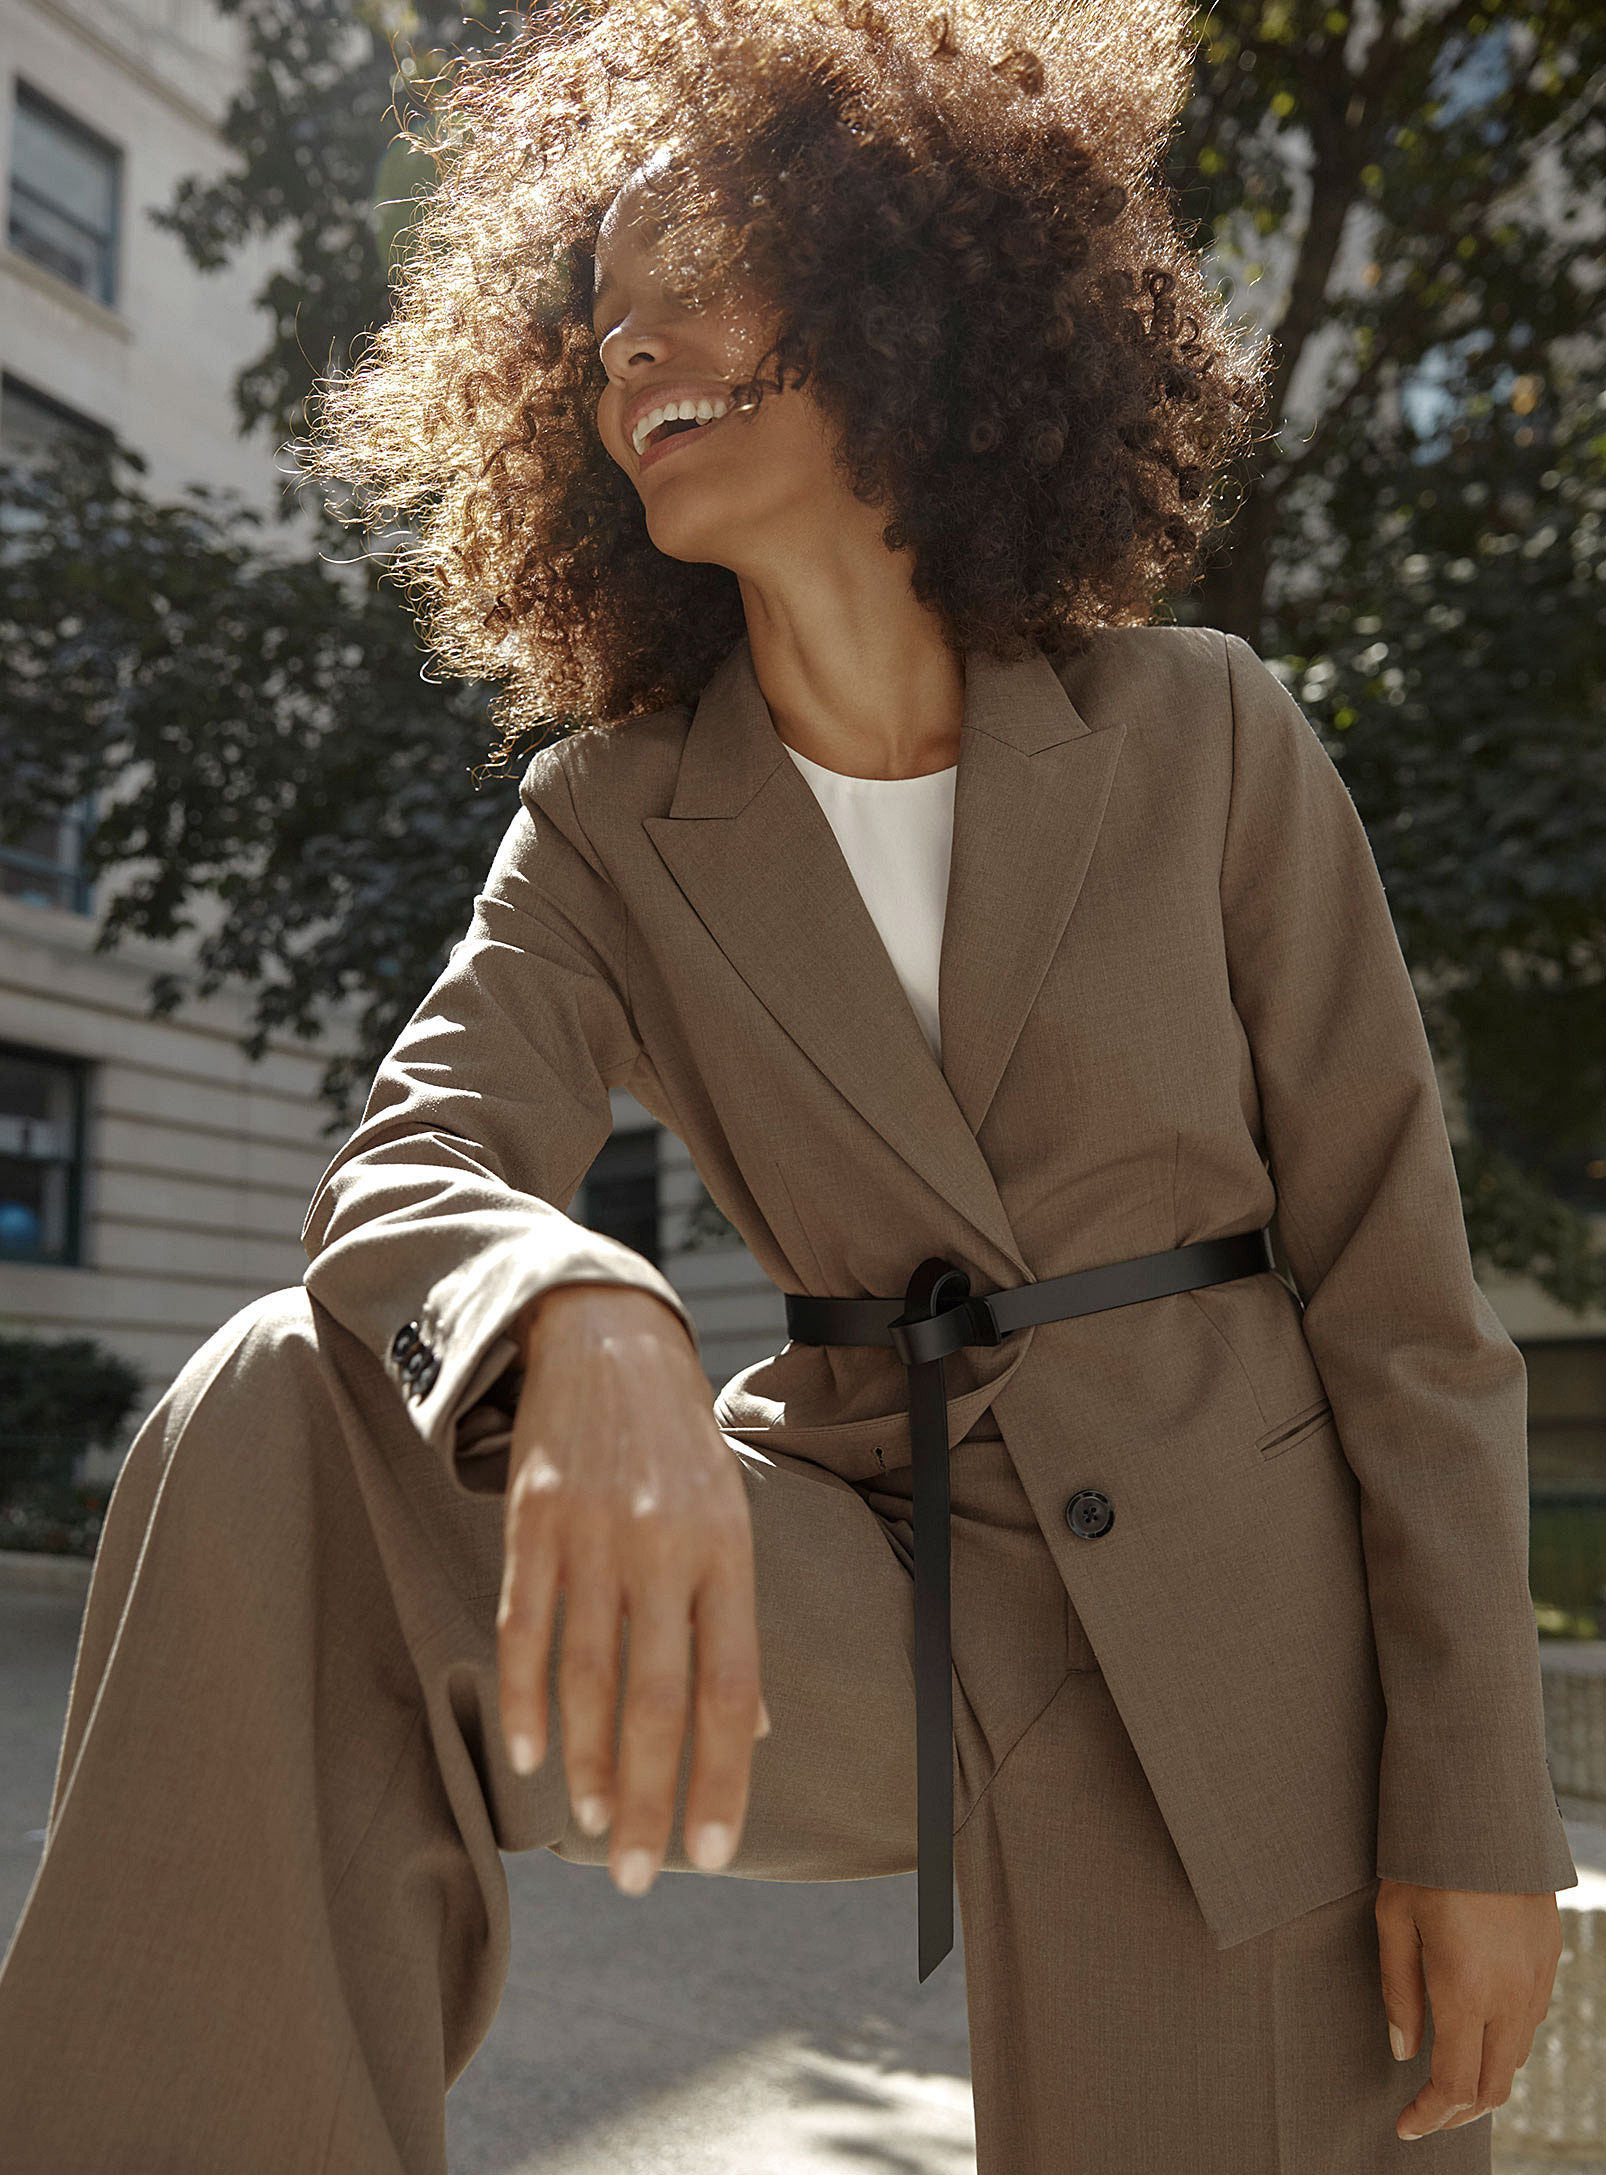 WORKWEAR GALORE - Even if you don't work a 9 - 5 job during the weekdays, you can still jump on the bandwagon of our favourite FW19 trend. From structured pantsuits to satiny wrap skirts and chunky knits, Simon's Workwear collection is elegance made effortless. Shop asymmetrical hemlines, contrasting materials, revisited fits, iconic prints, and Fall's hottest colour palette — sage, pastel blue, copper...